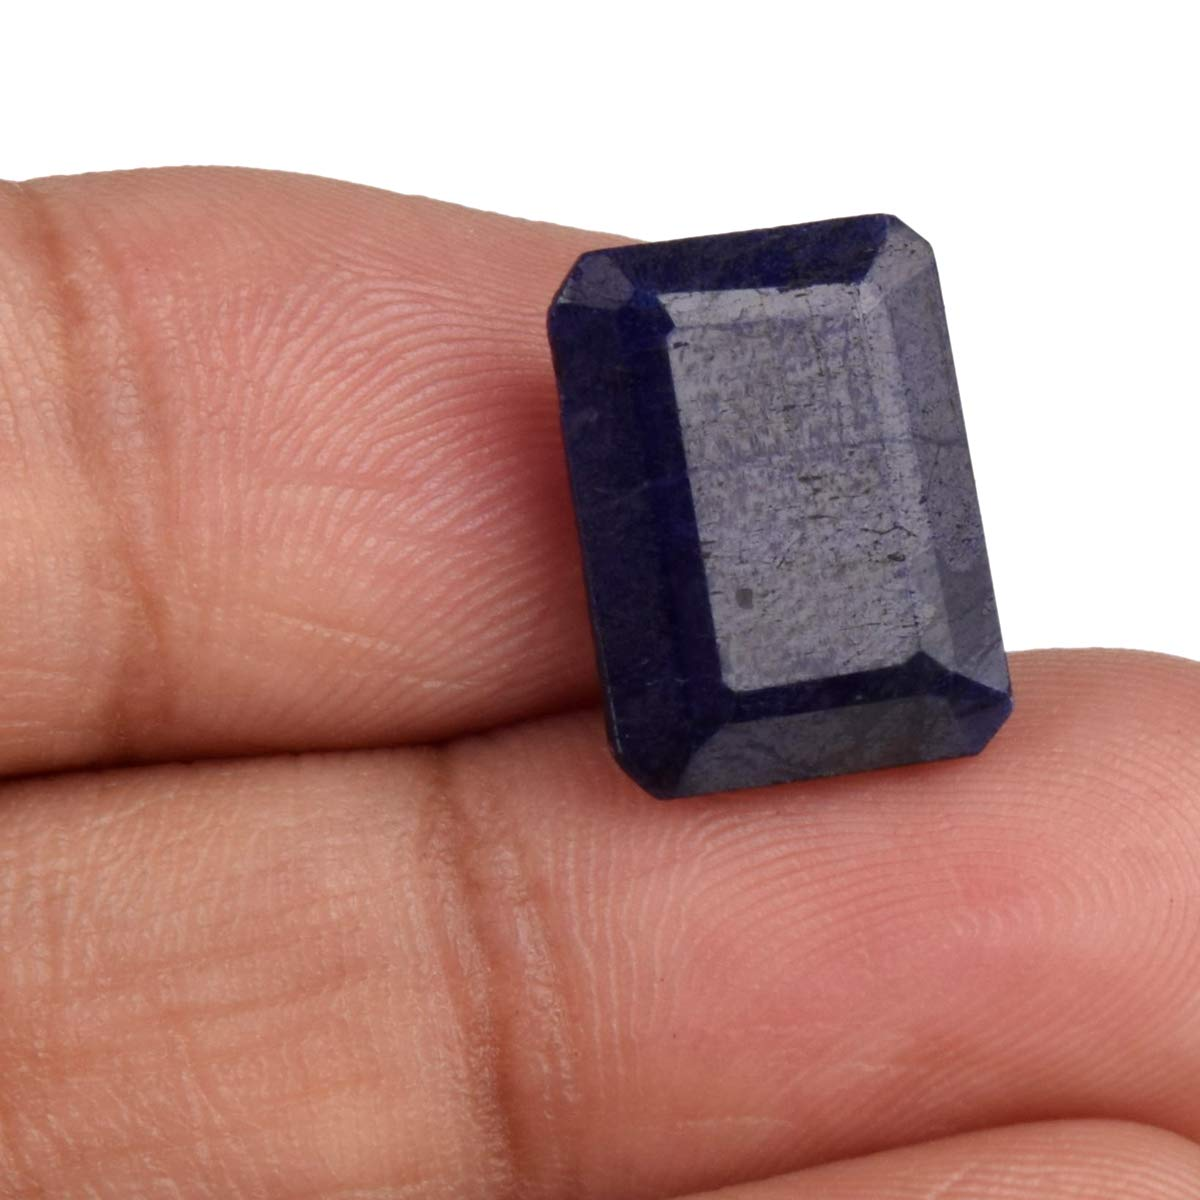 High Quality Blue Sapphire 8.65 Ct Faceted Blue Sapphire Emerald Cut Blue Sapphire Natural Sapphire Stone For Jewelry